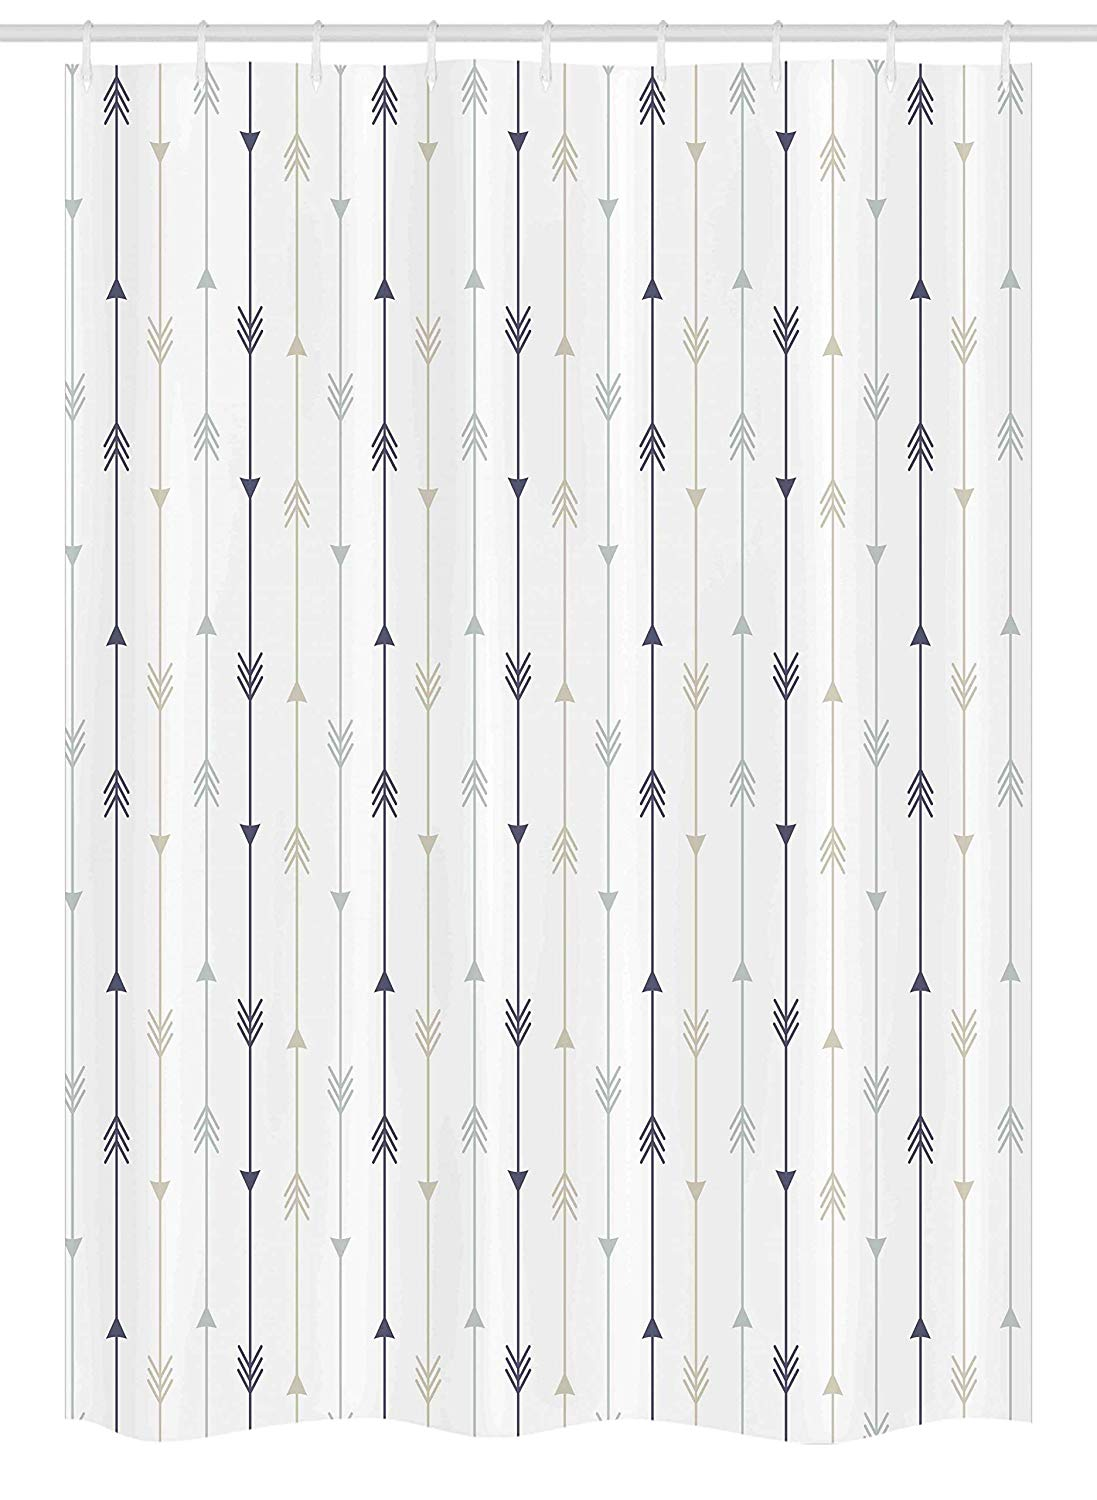 Ambesonne Arrows Stall Shower Curtain, Vertical Geometric Monochrome Hipster Line Pattern With Vintage Arrows, Fabric Bathroom Decor Set with Hooks, 54 W x 78 L Inches, Dimgrey Tan and White